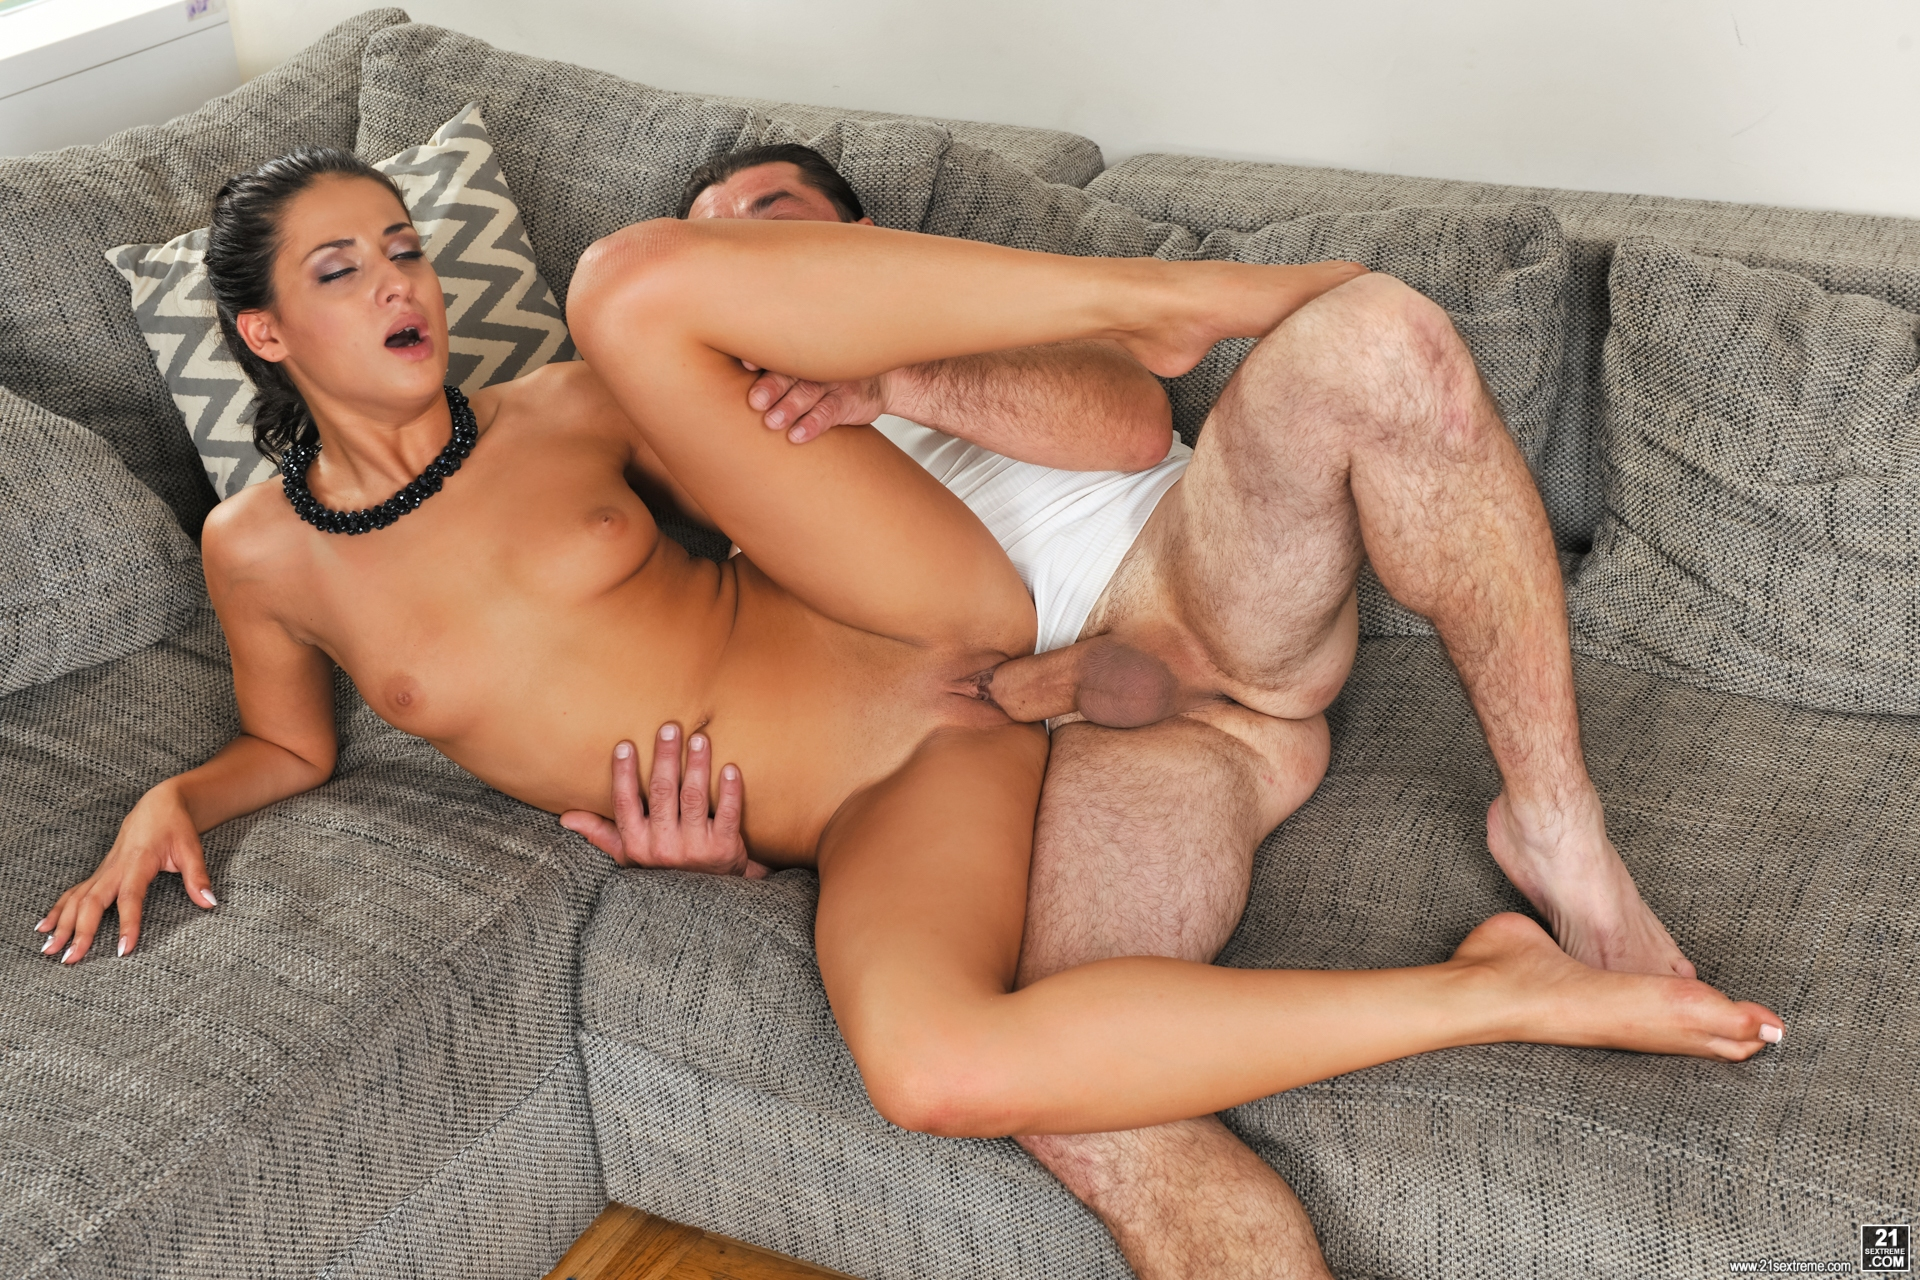 Adult x rated porn-4707